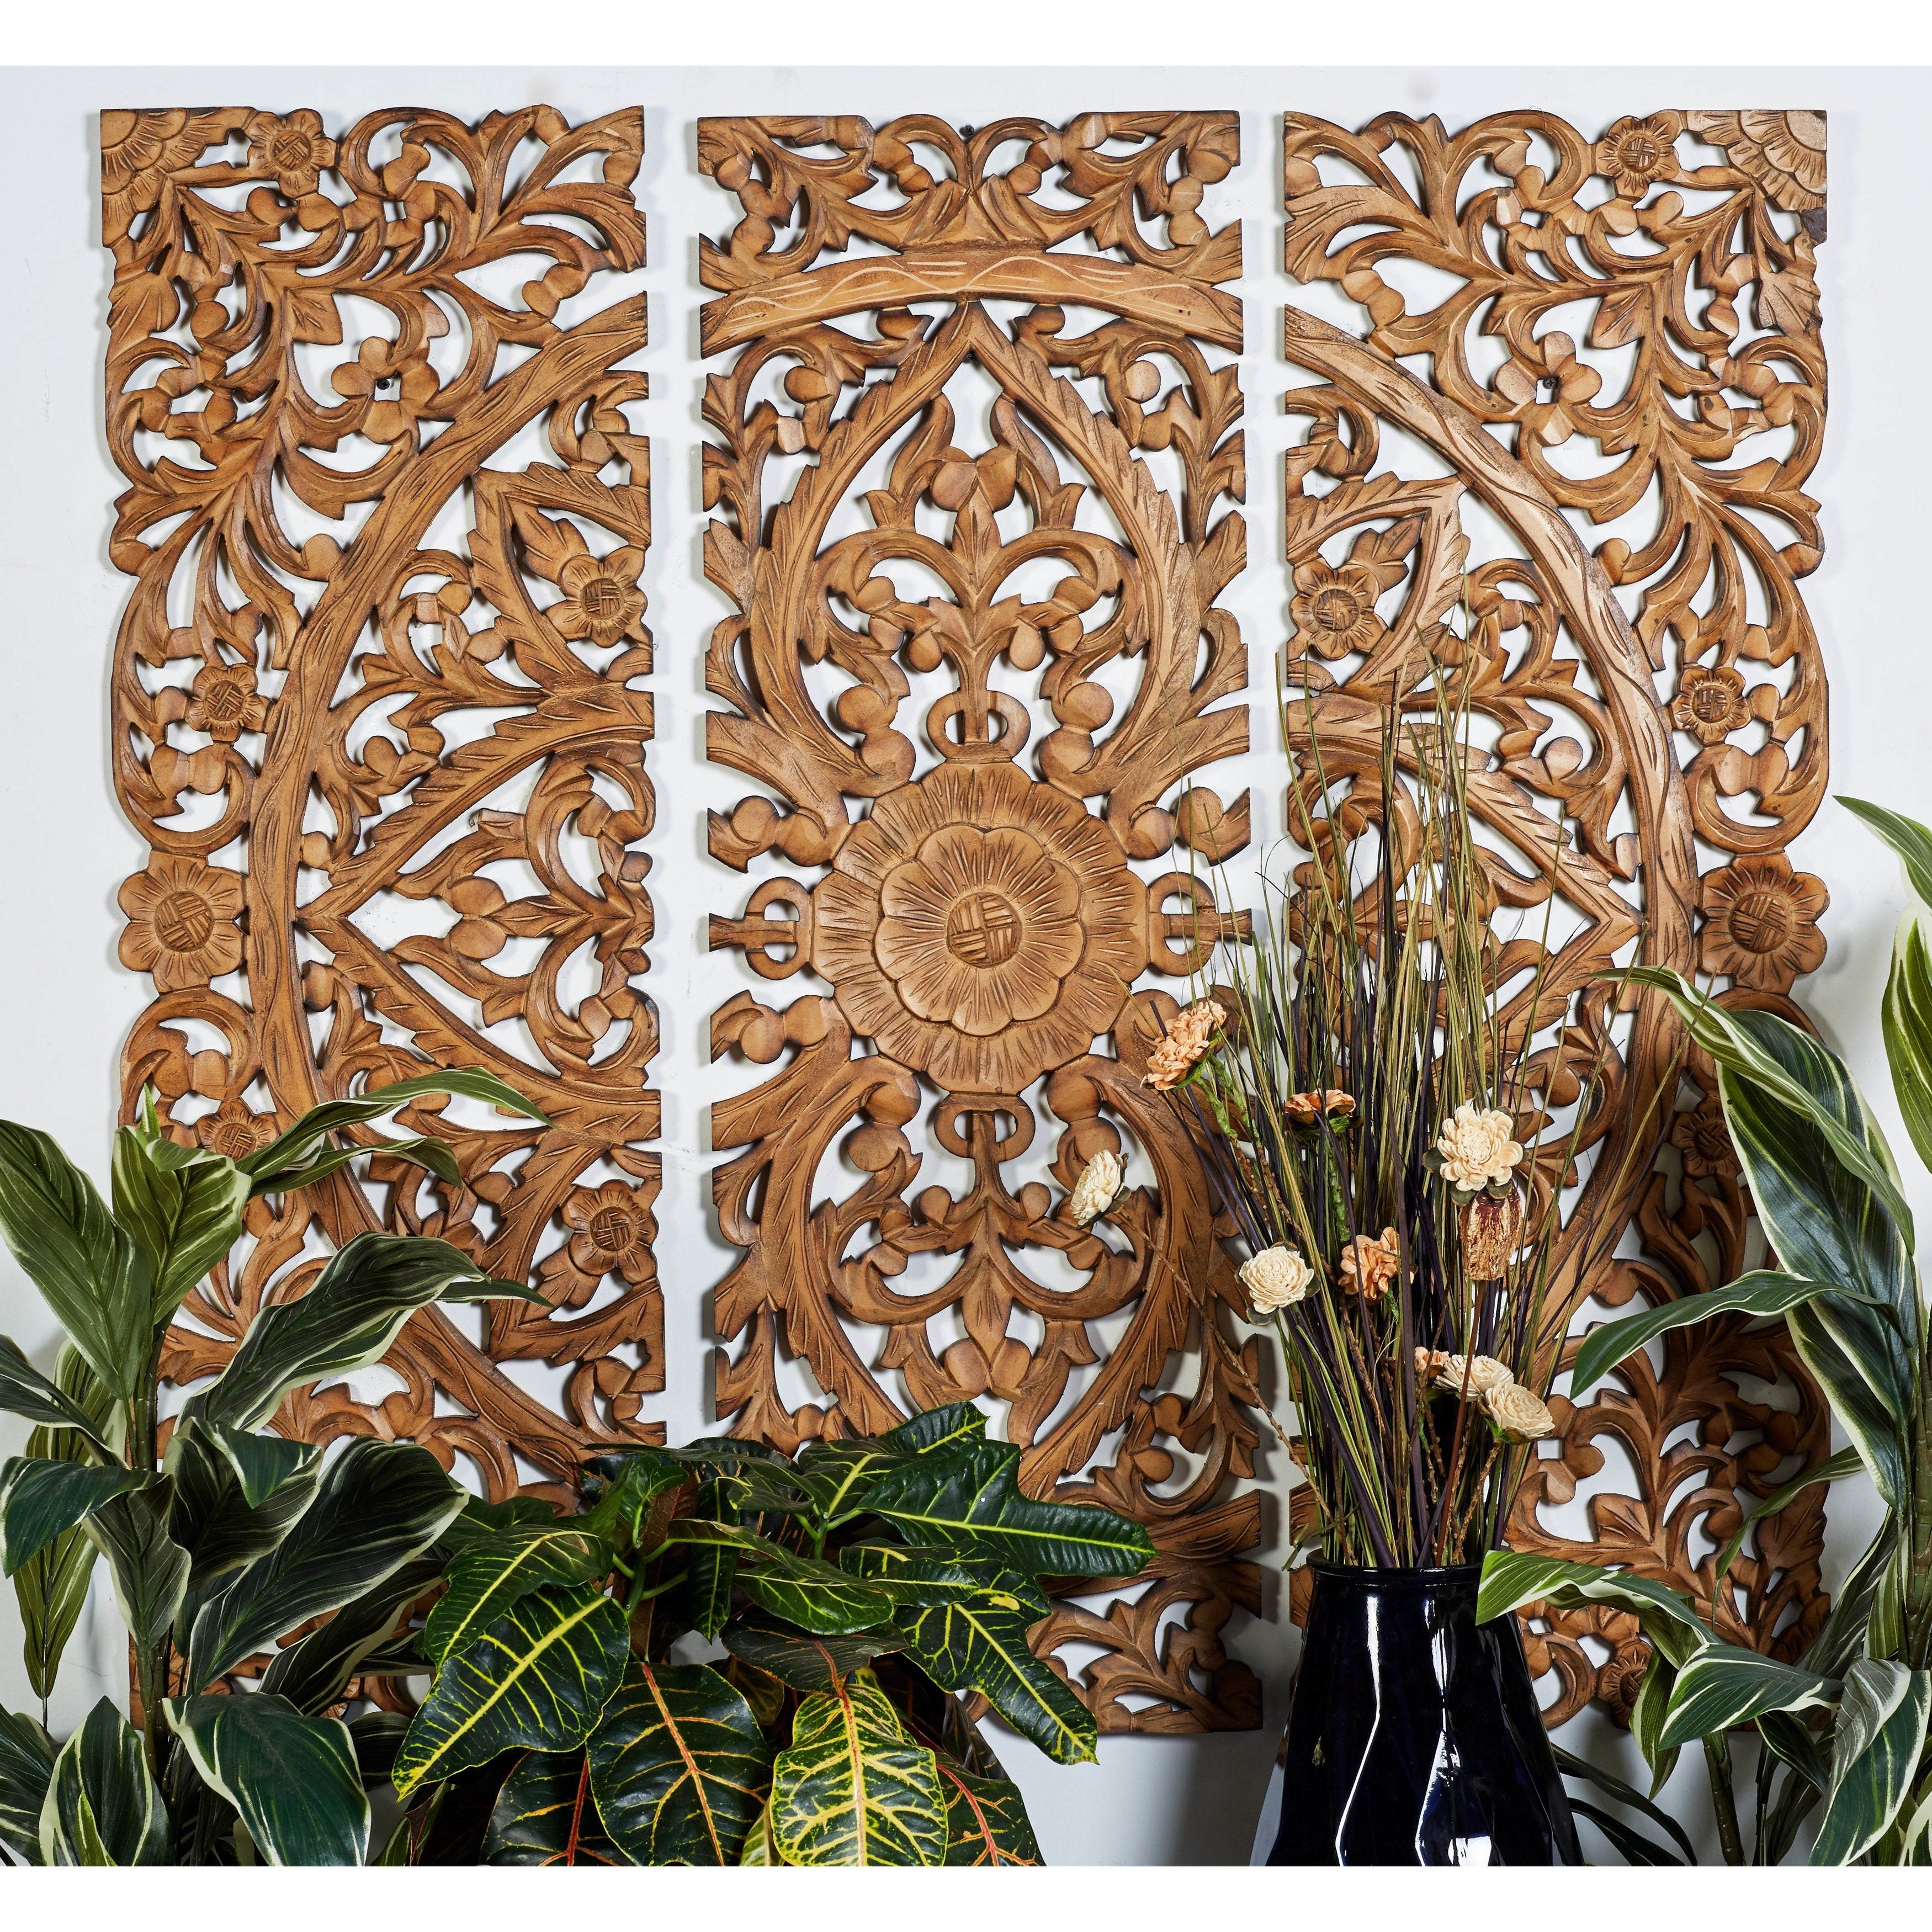 2 Piece Panel Wood Wall Decor Sets (Set Of 2) Throughout Preferred Wood Wall Art (View 2 of 20)